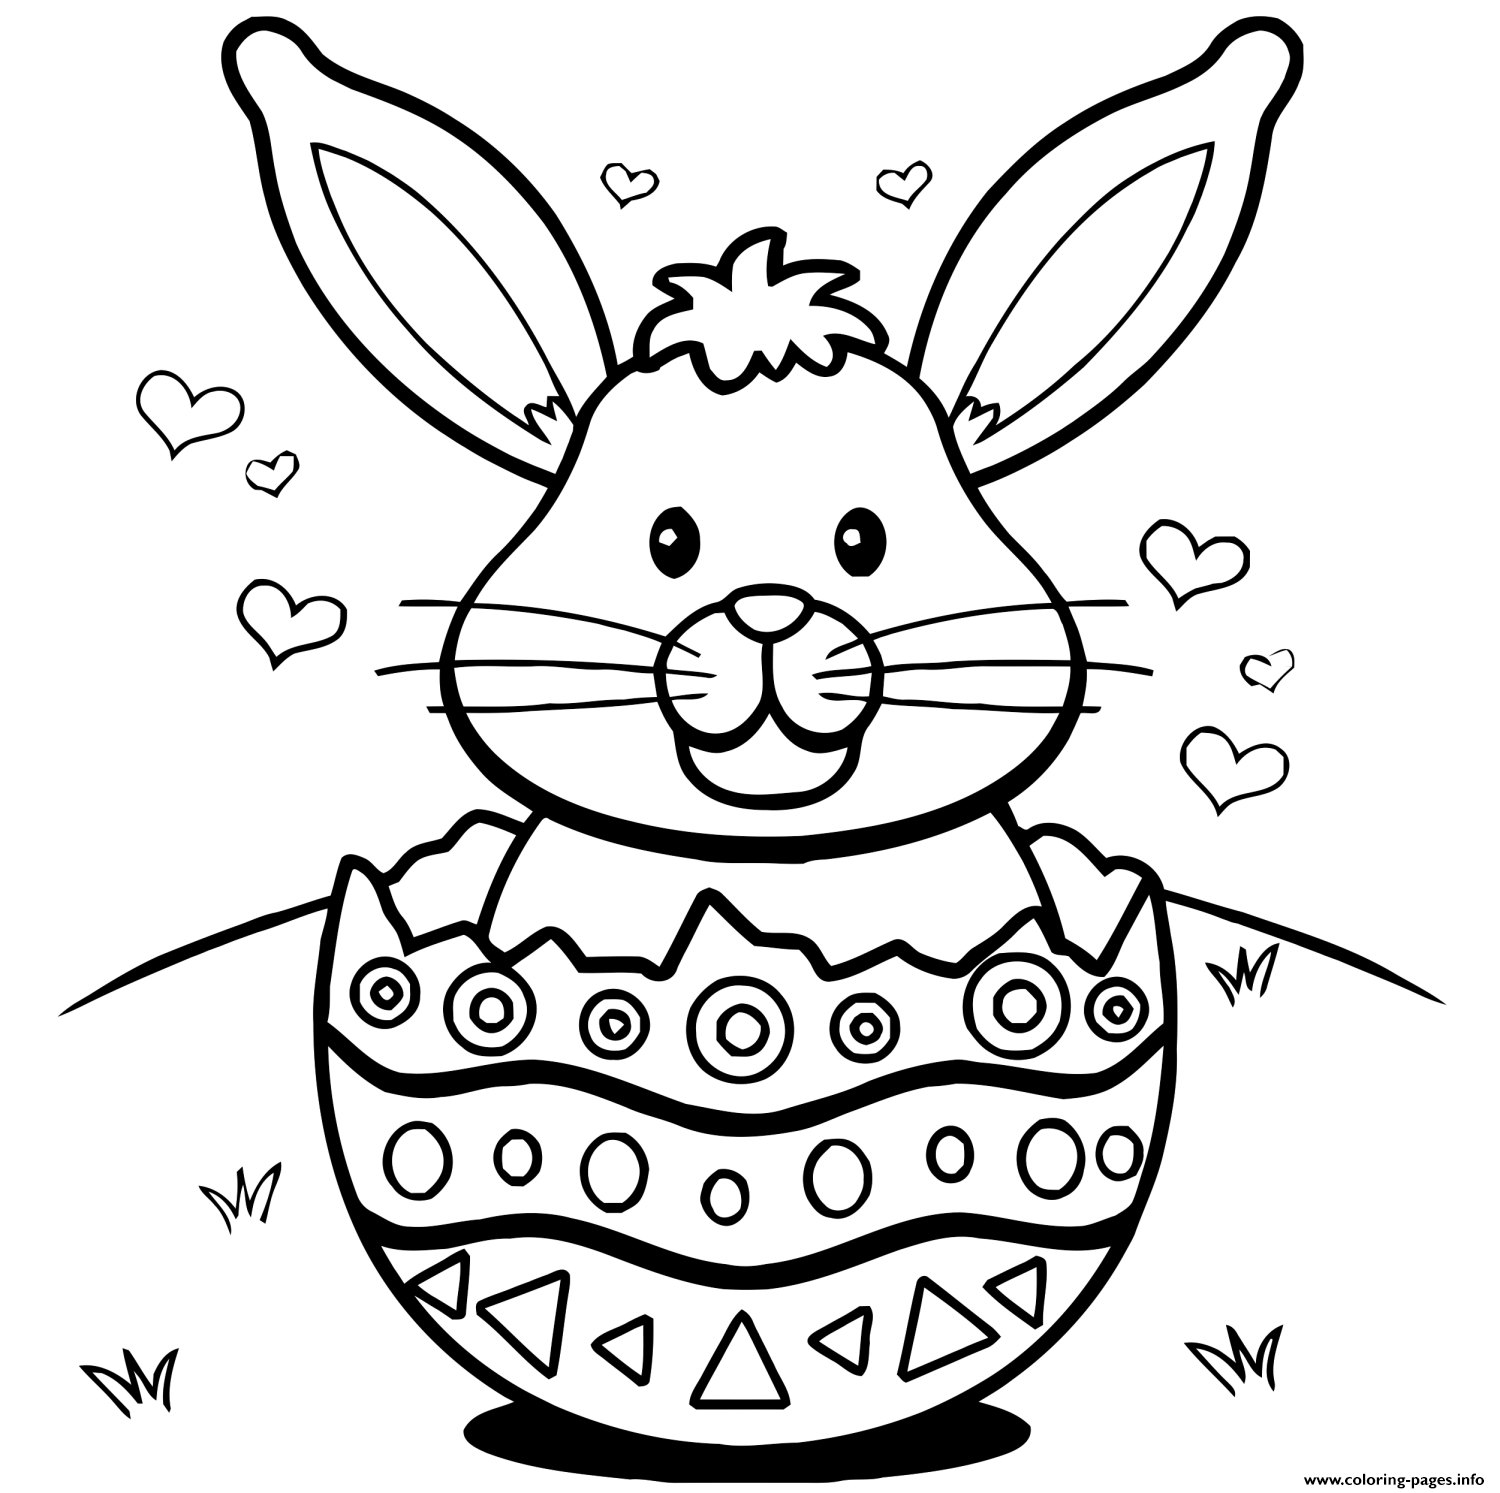 1500x1493 Easter Bunny Eggs Hearts Coloring Pages Printable